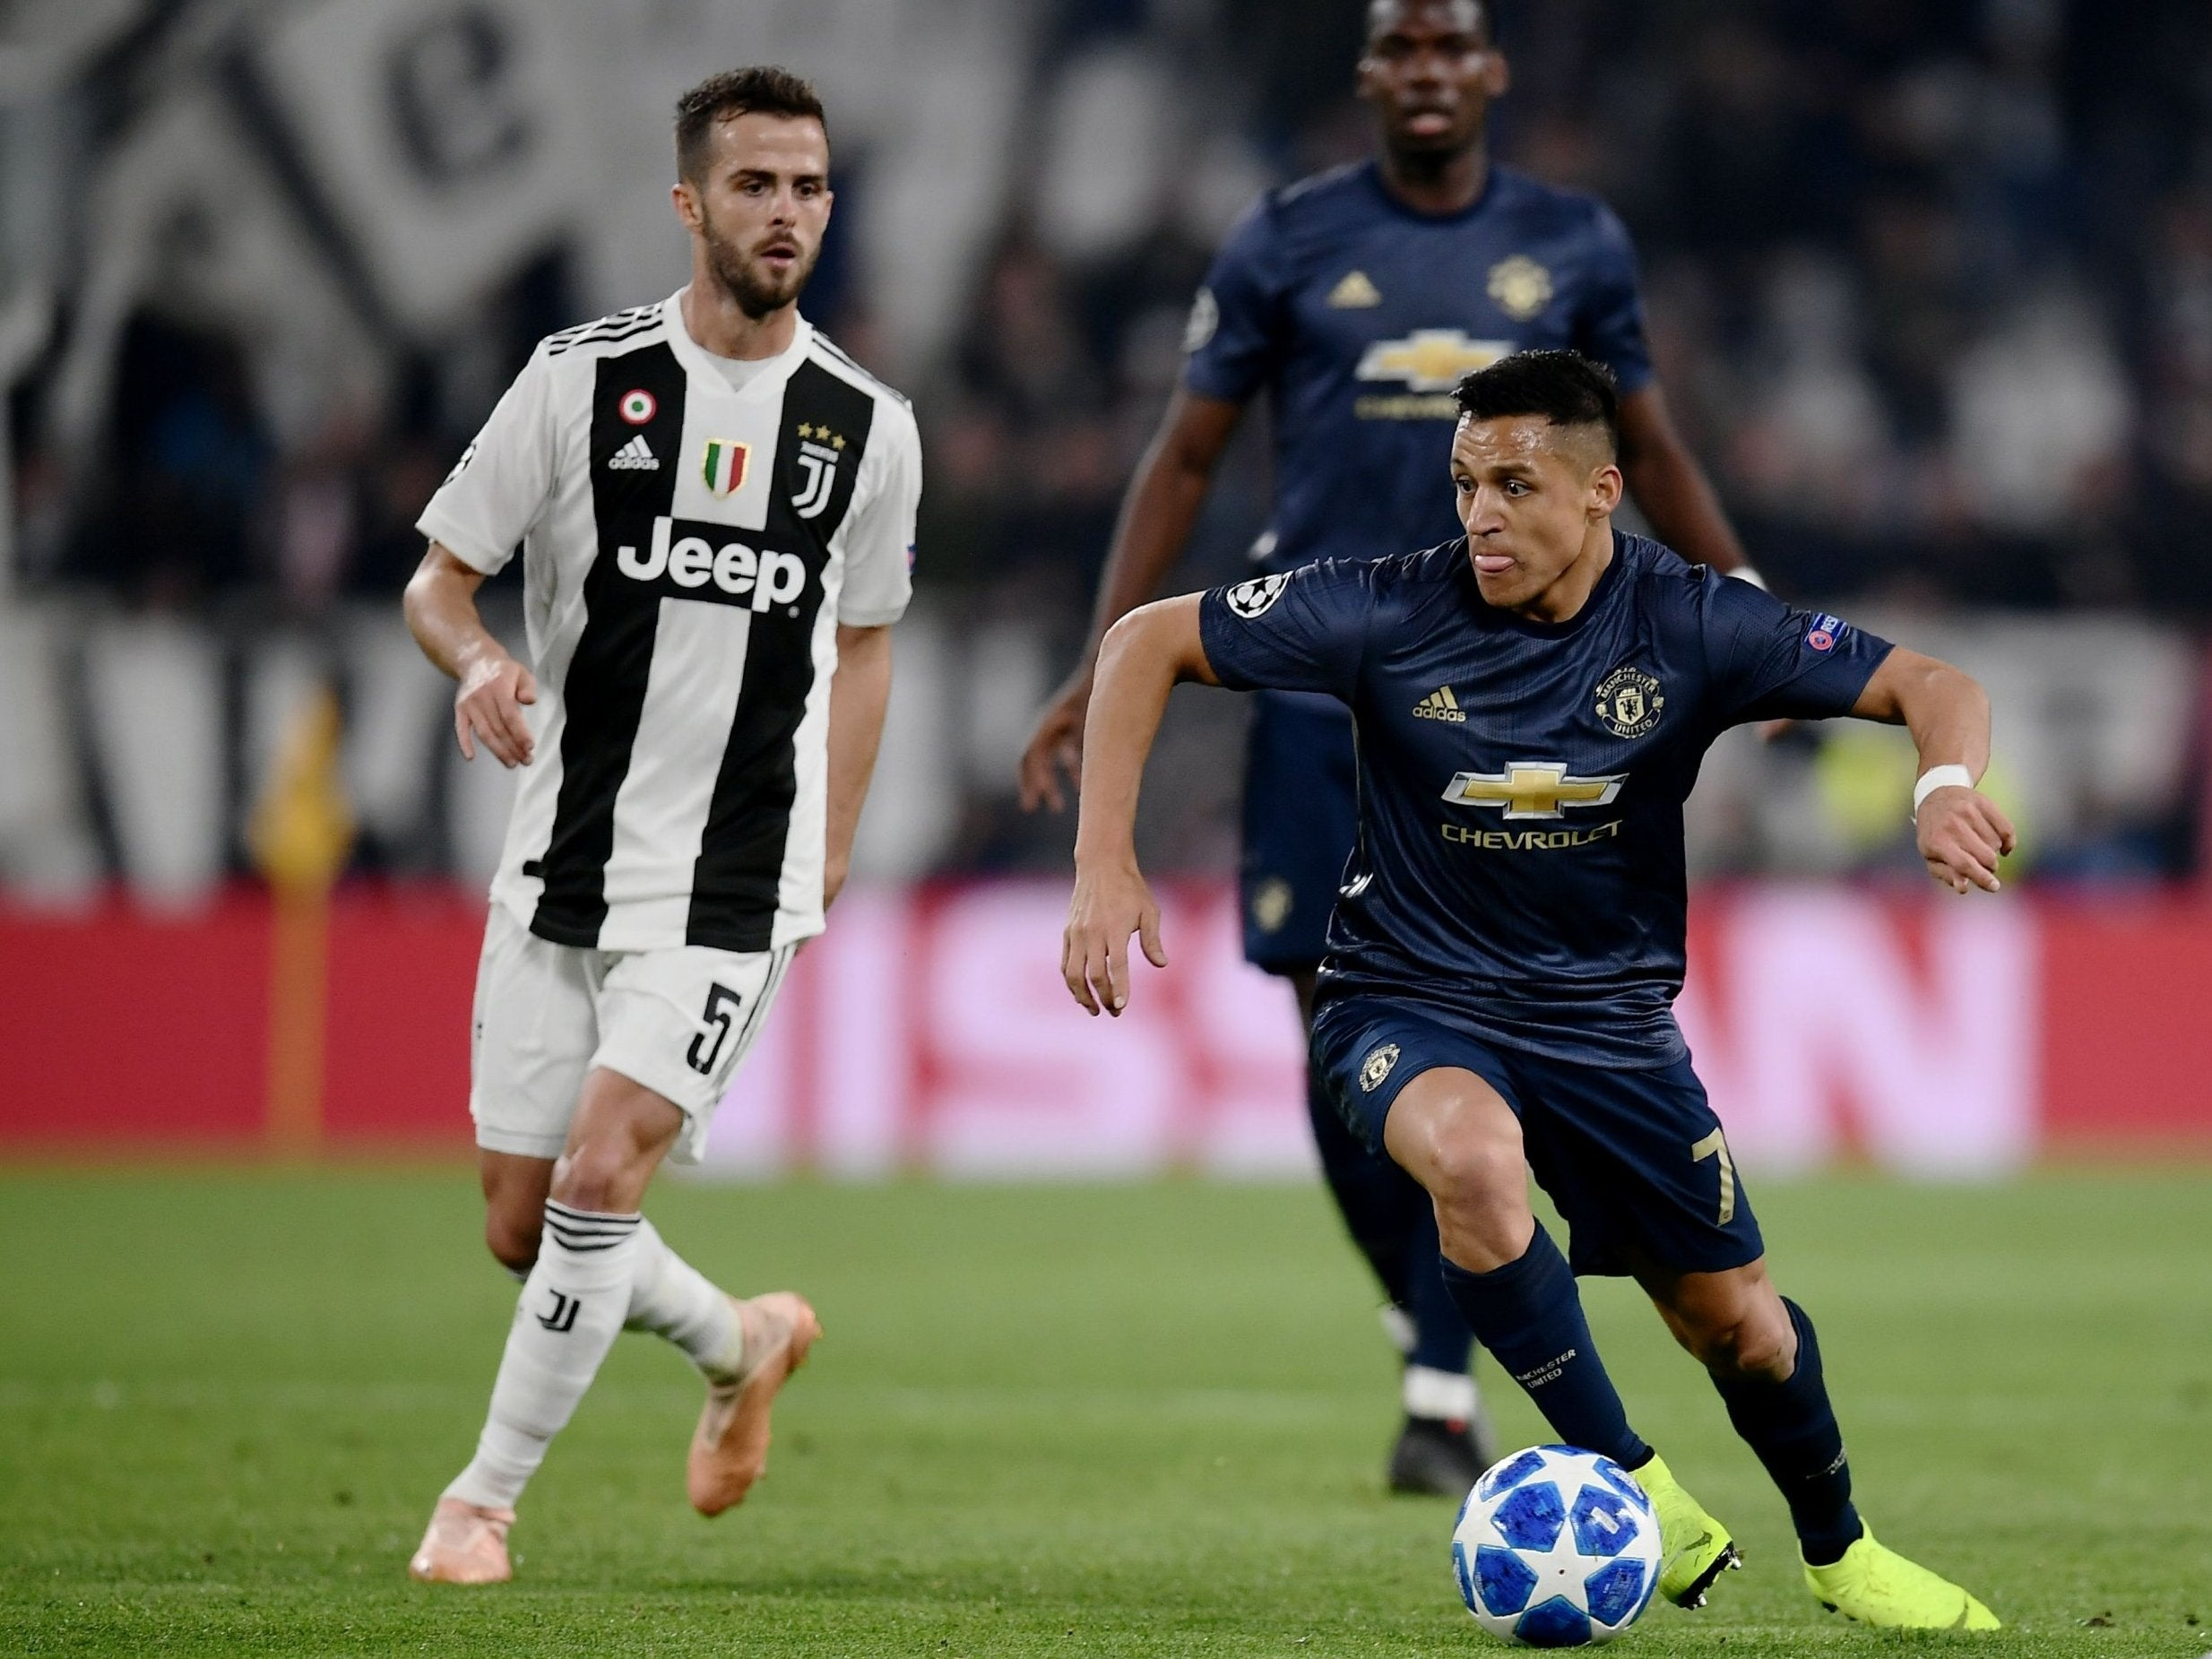 Juventus vs Manchester United, Champions League LIVE: What time, what channel, streaming info and more thumbnail